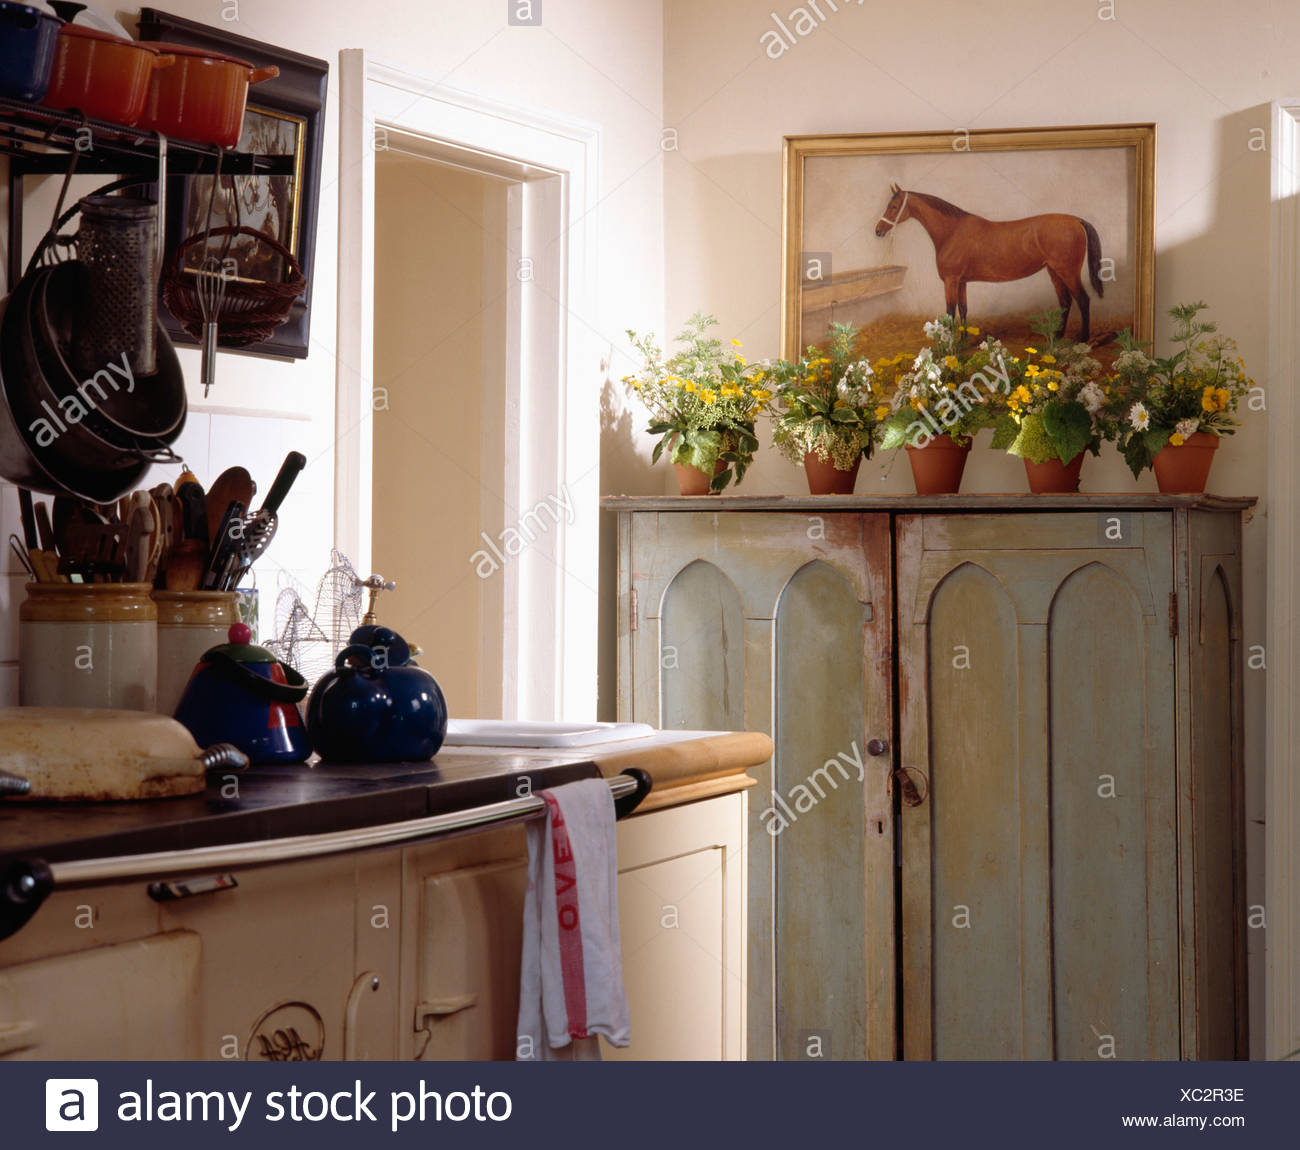 Old cupboard painted grey with row of terracotta pots with flowers in country kitchen - Stock Image